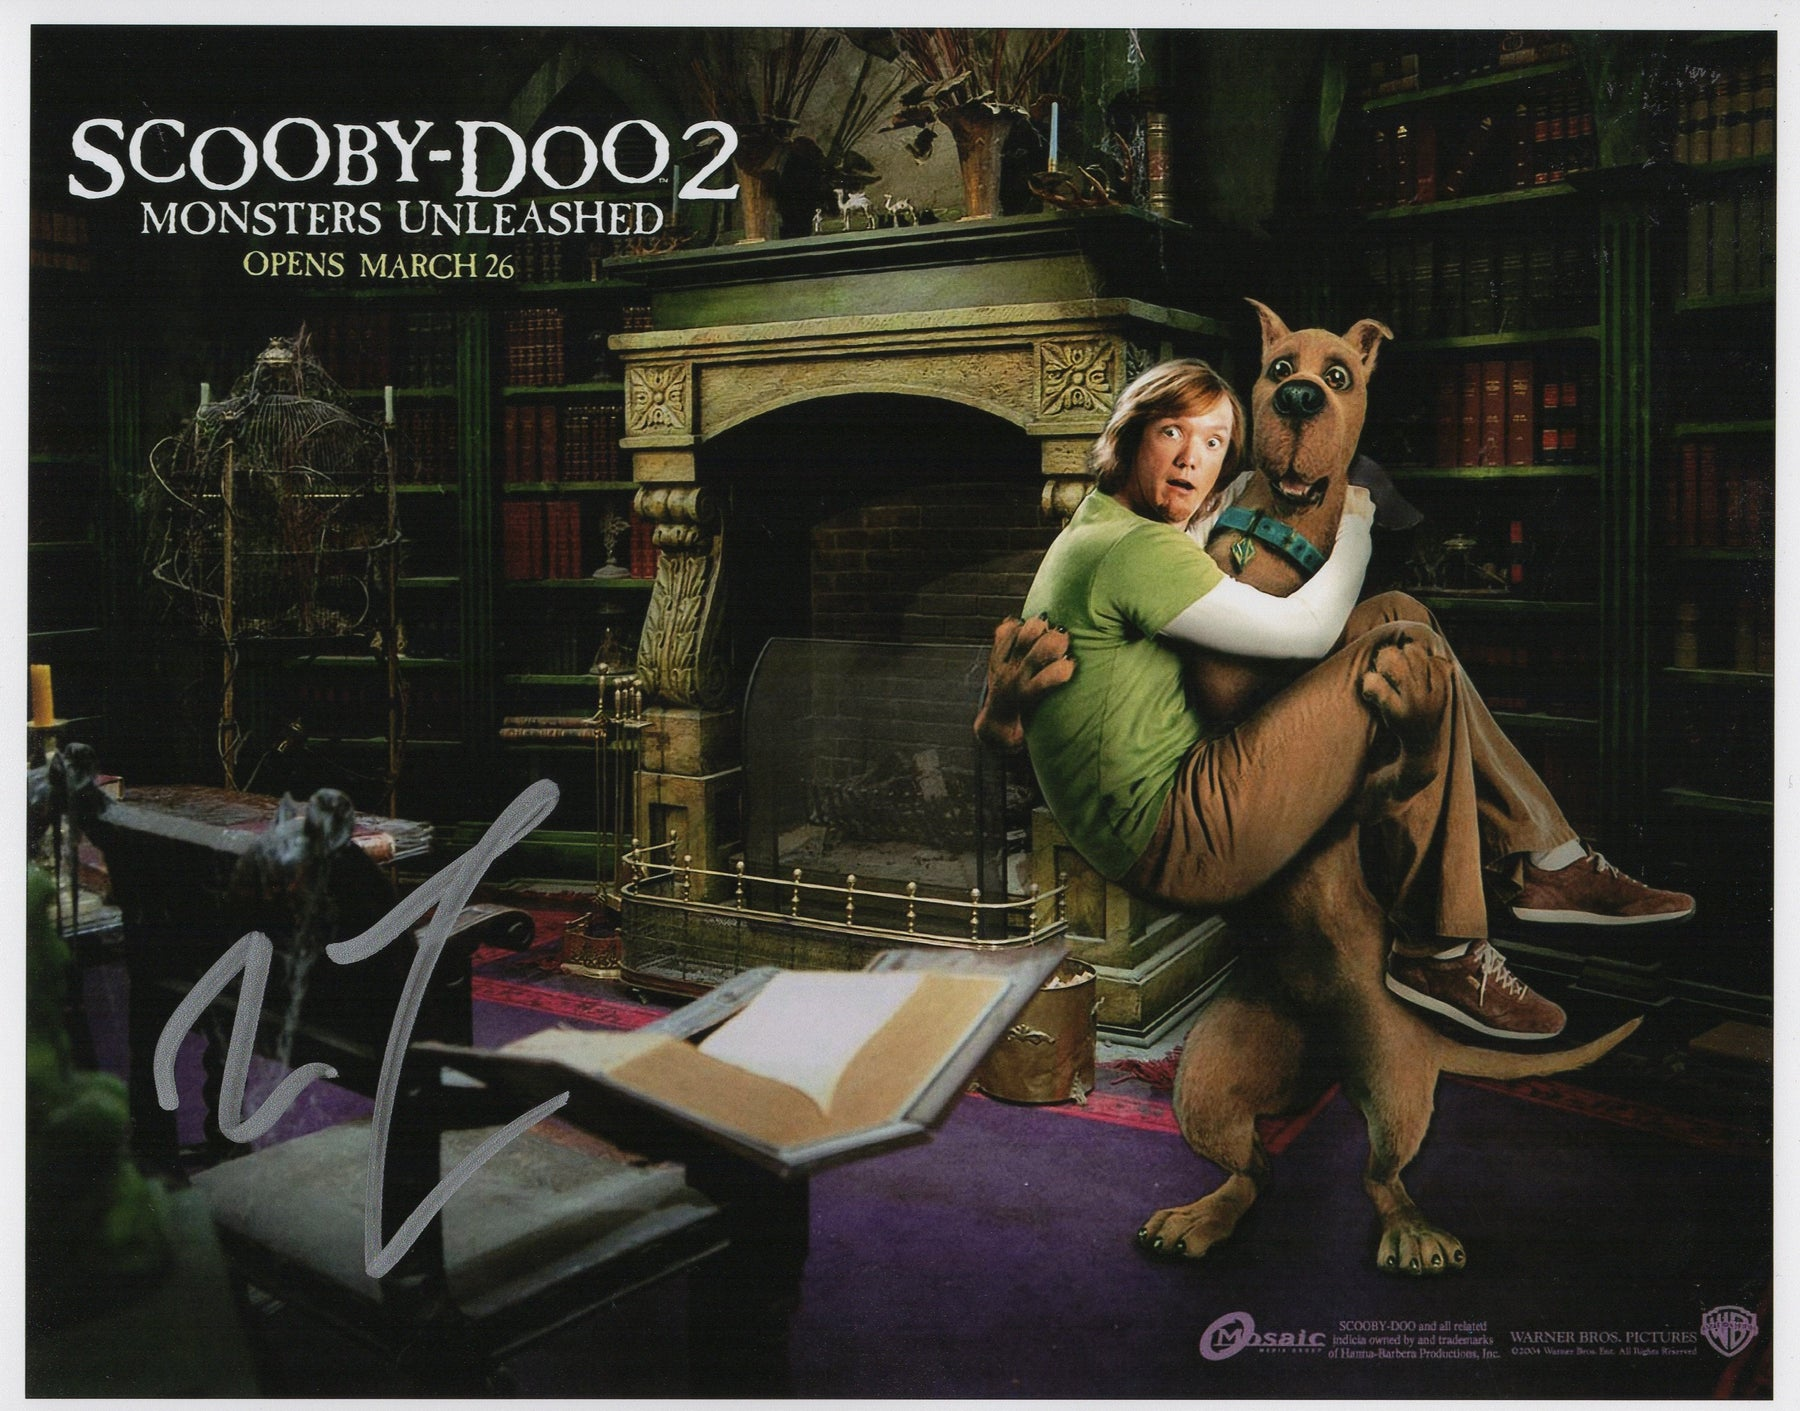 Matthew Lillard Signed 8x10 Photo Autograph Scooby Doo COA